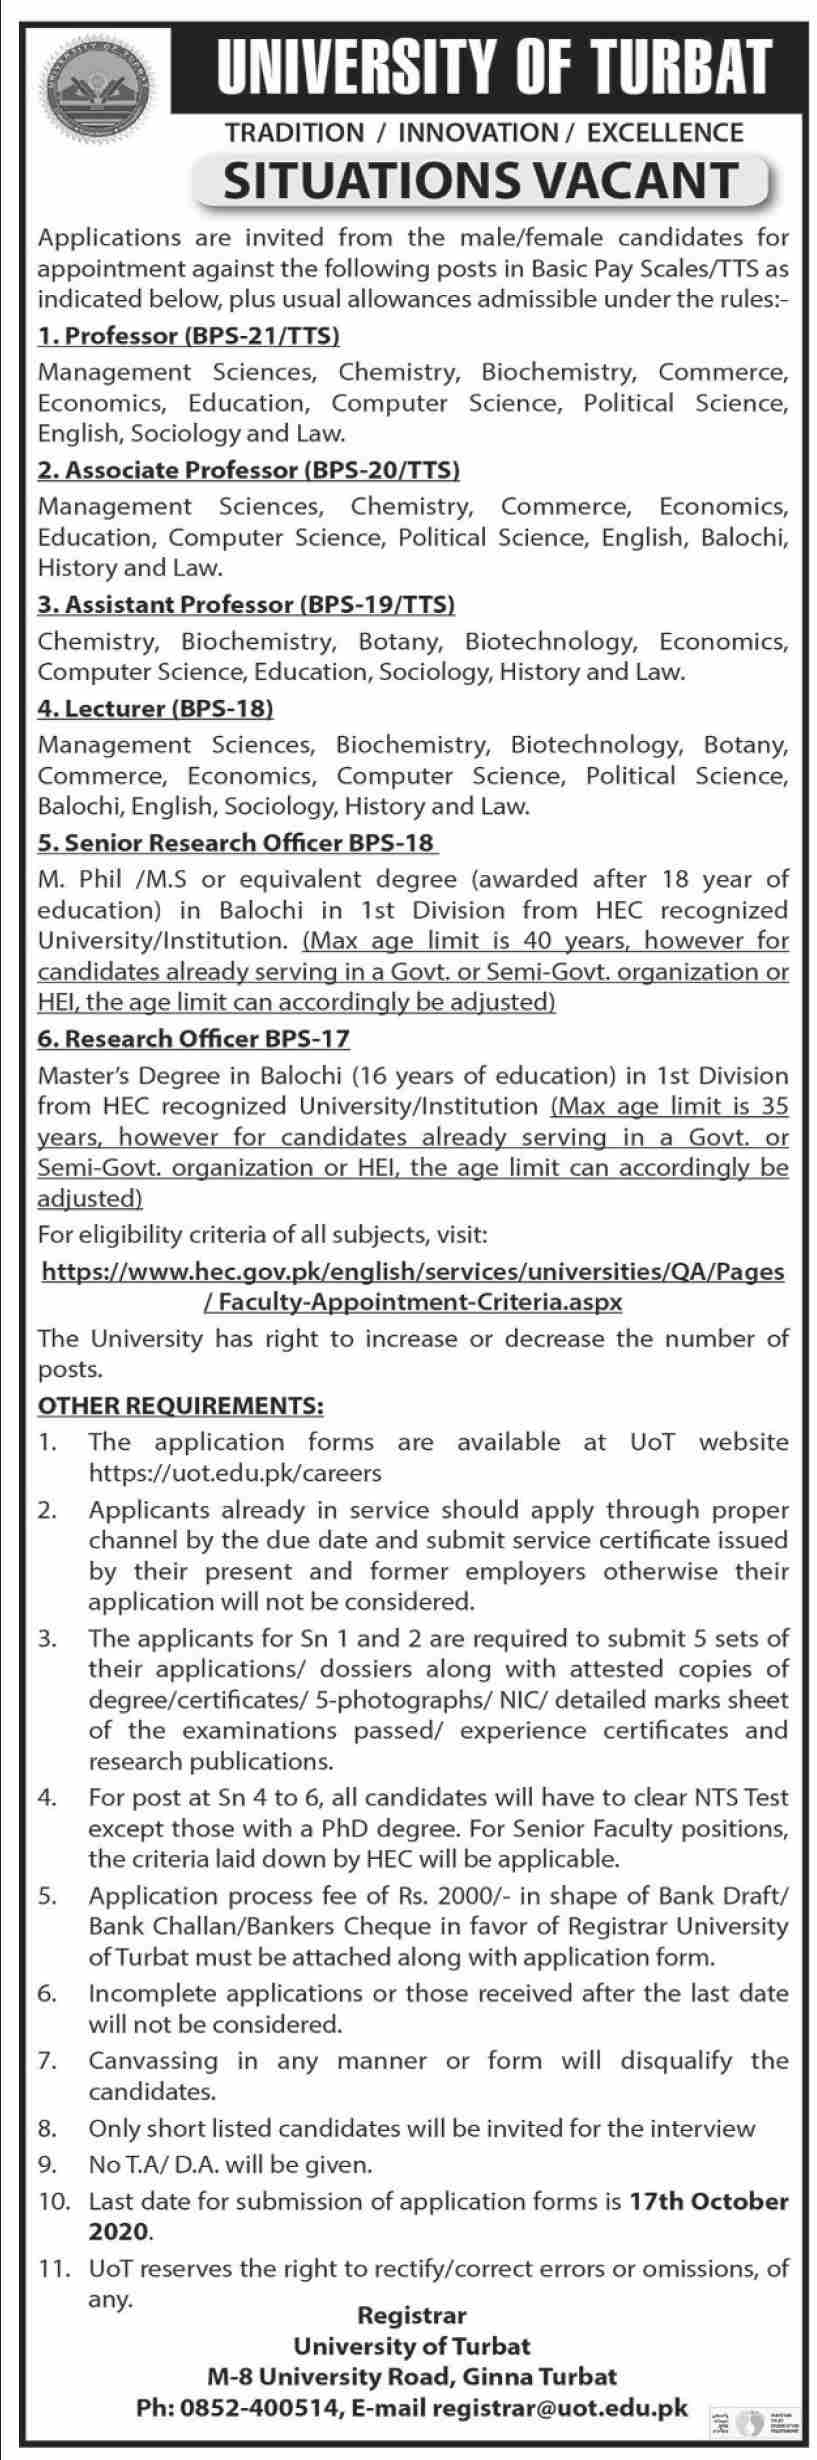 University Of Turbat Jobs September 2020